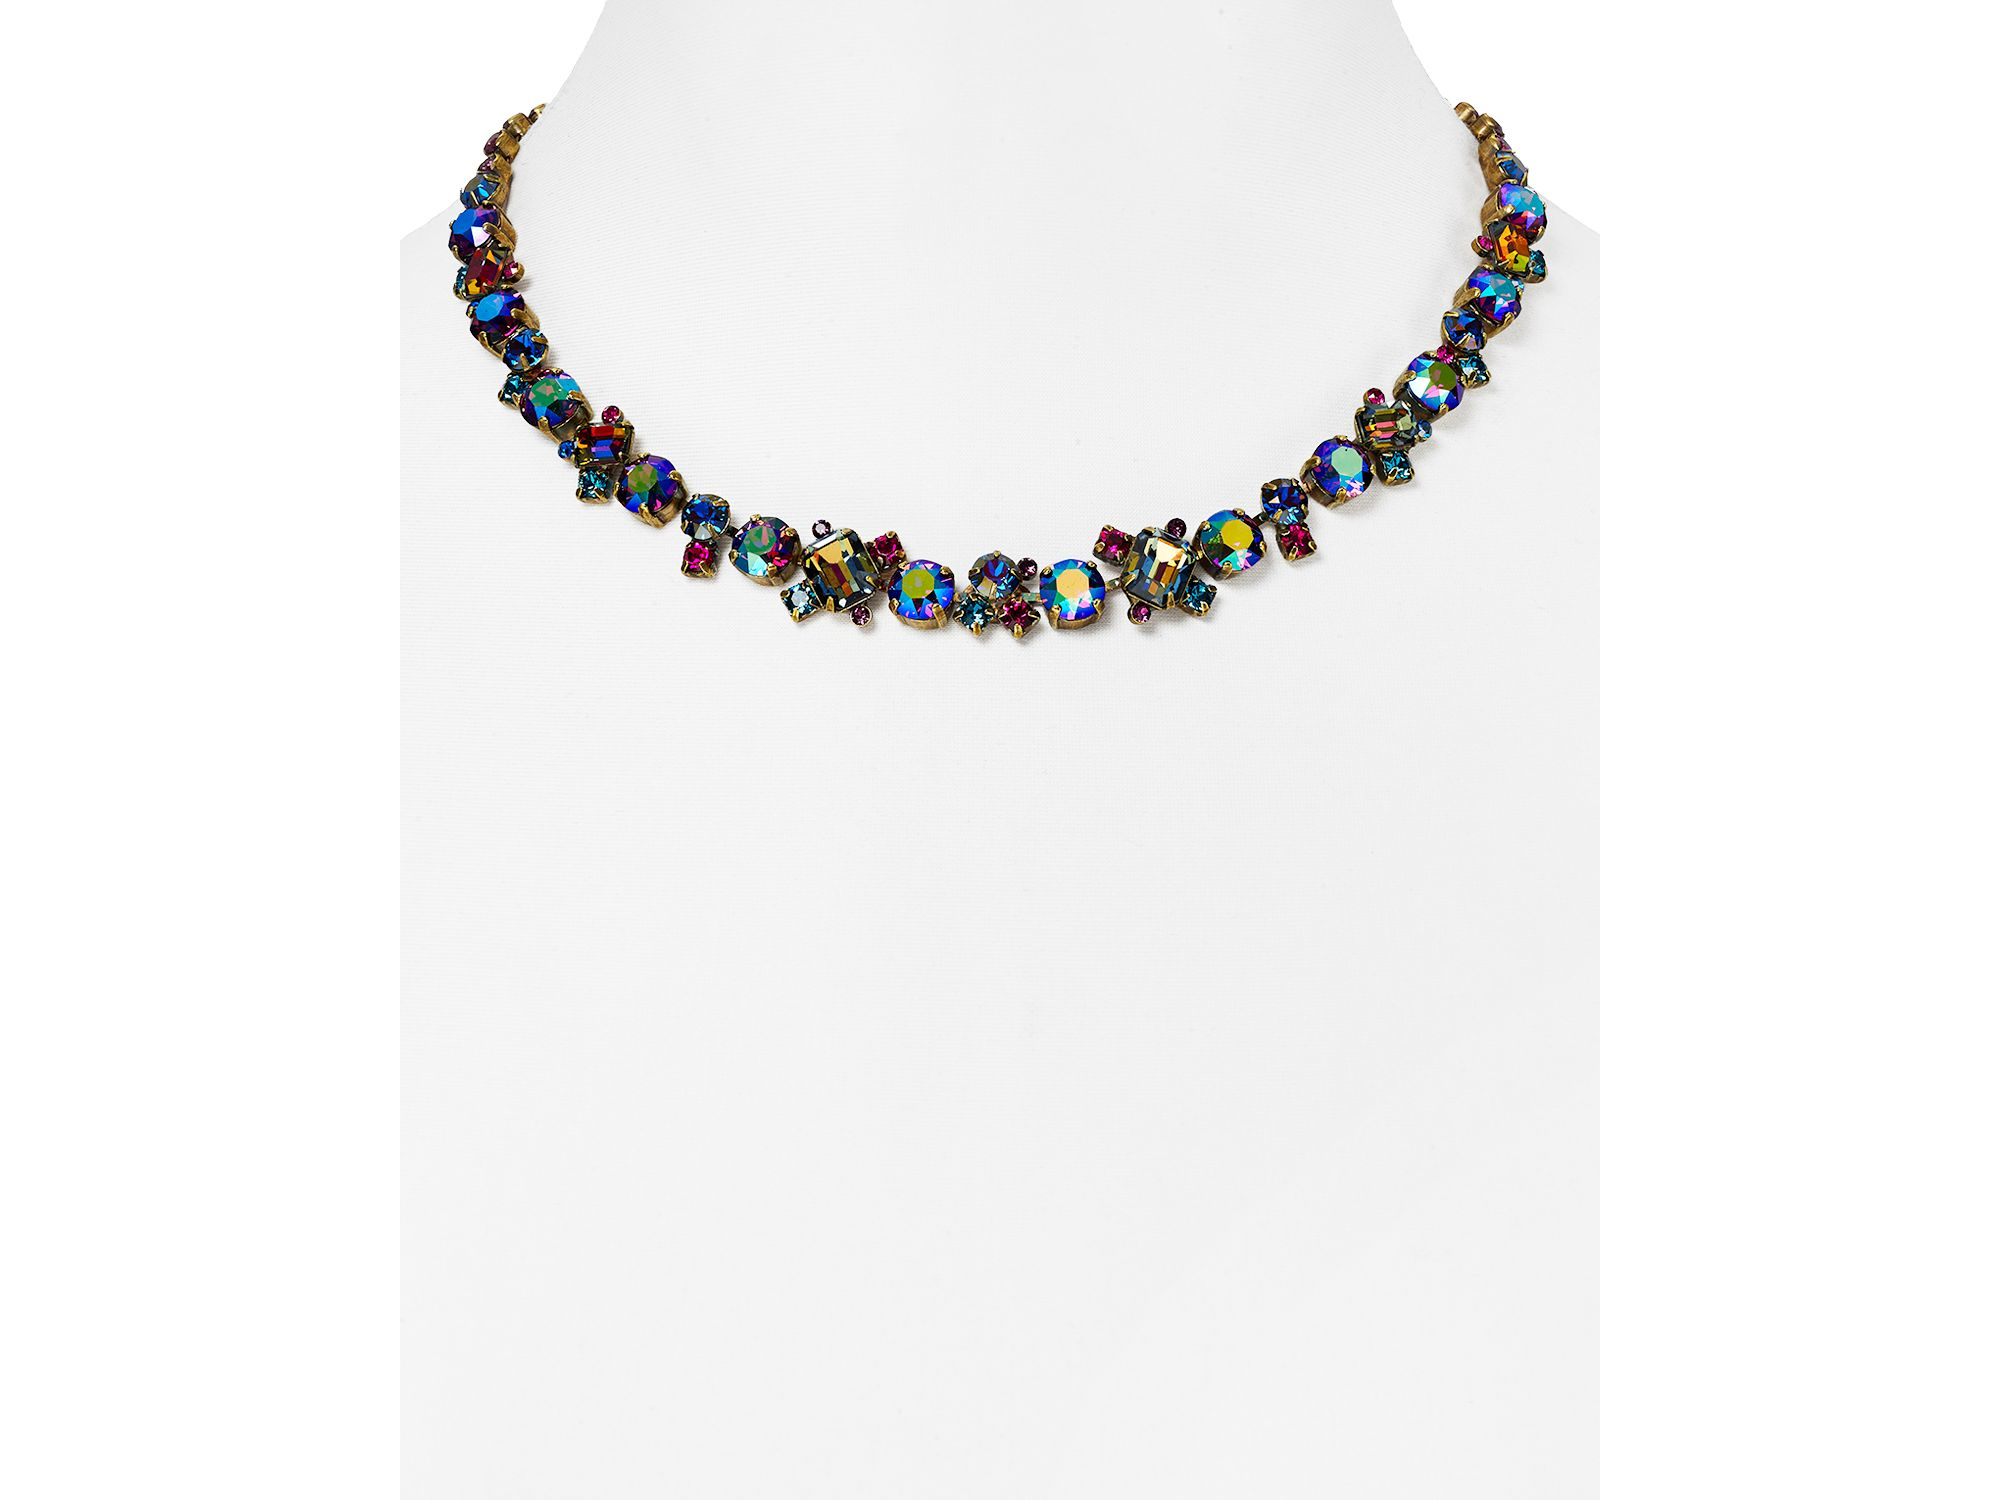 Lyst Sorrelli Multicolored Crystal Collar Necklace 16 Quot